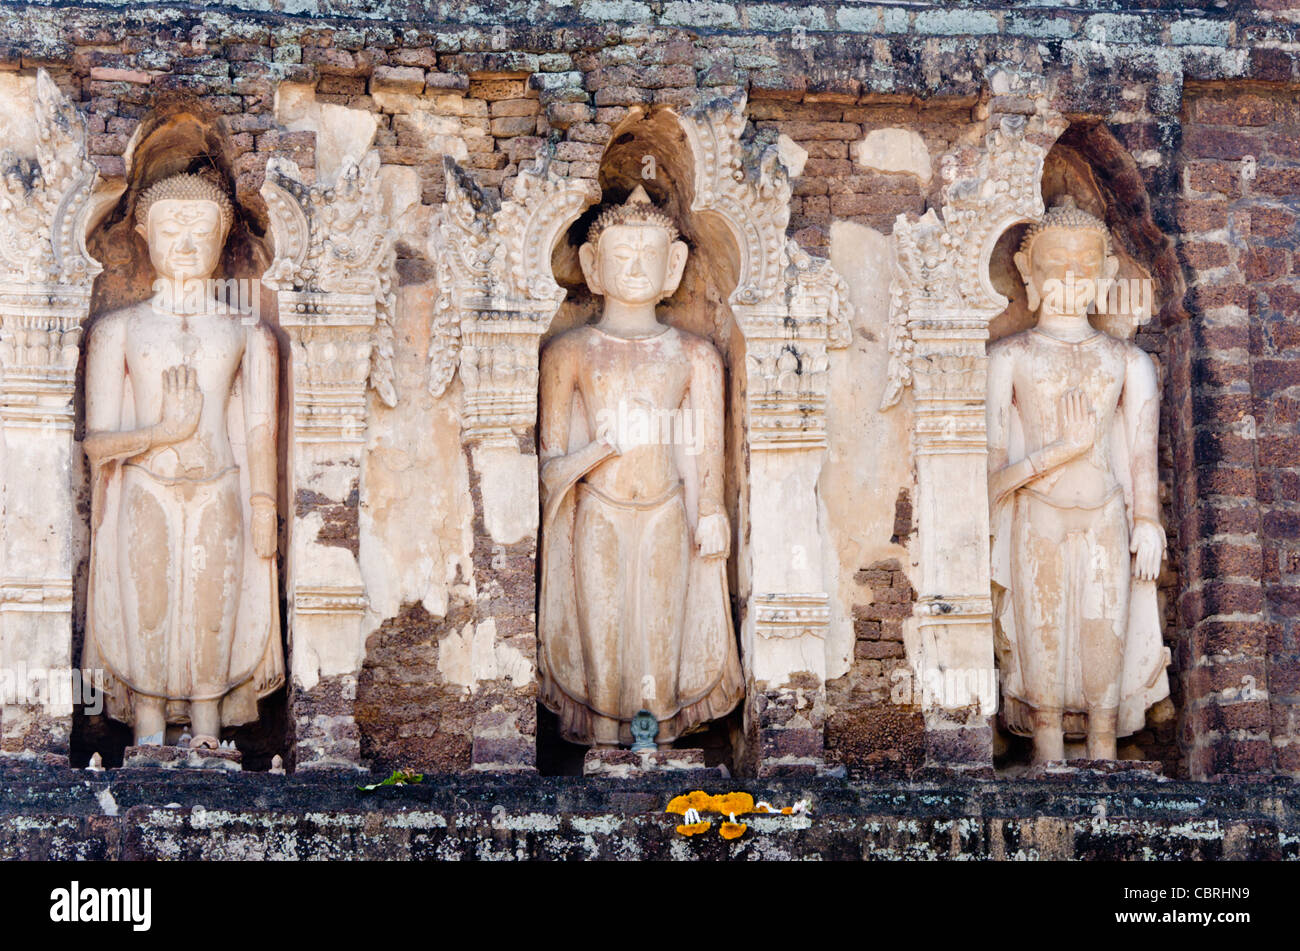 Midsection of the 900 year old chedi (stupa) with standing Buddhas at Wat Chama Thewi in Lamphun in Thailand with - Stock Image